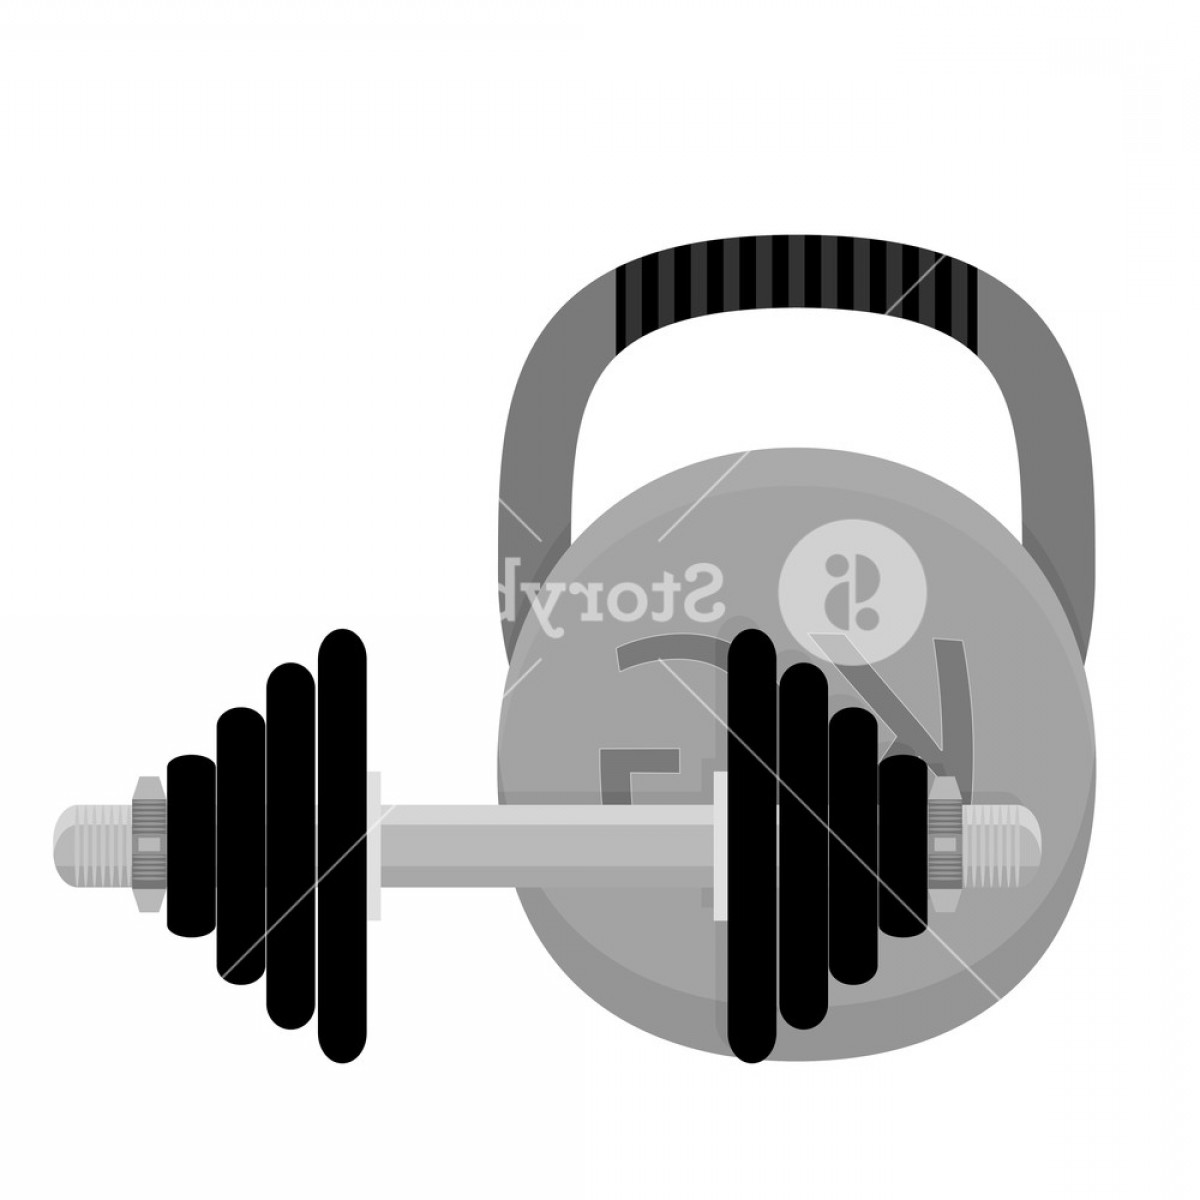 Vector Weight Lifting: Weightlifting Kettlebell And Dumbbell Workout Equipment And Training Bodybuilding Vector Illustration Hyqwnuwjqd